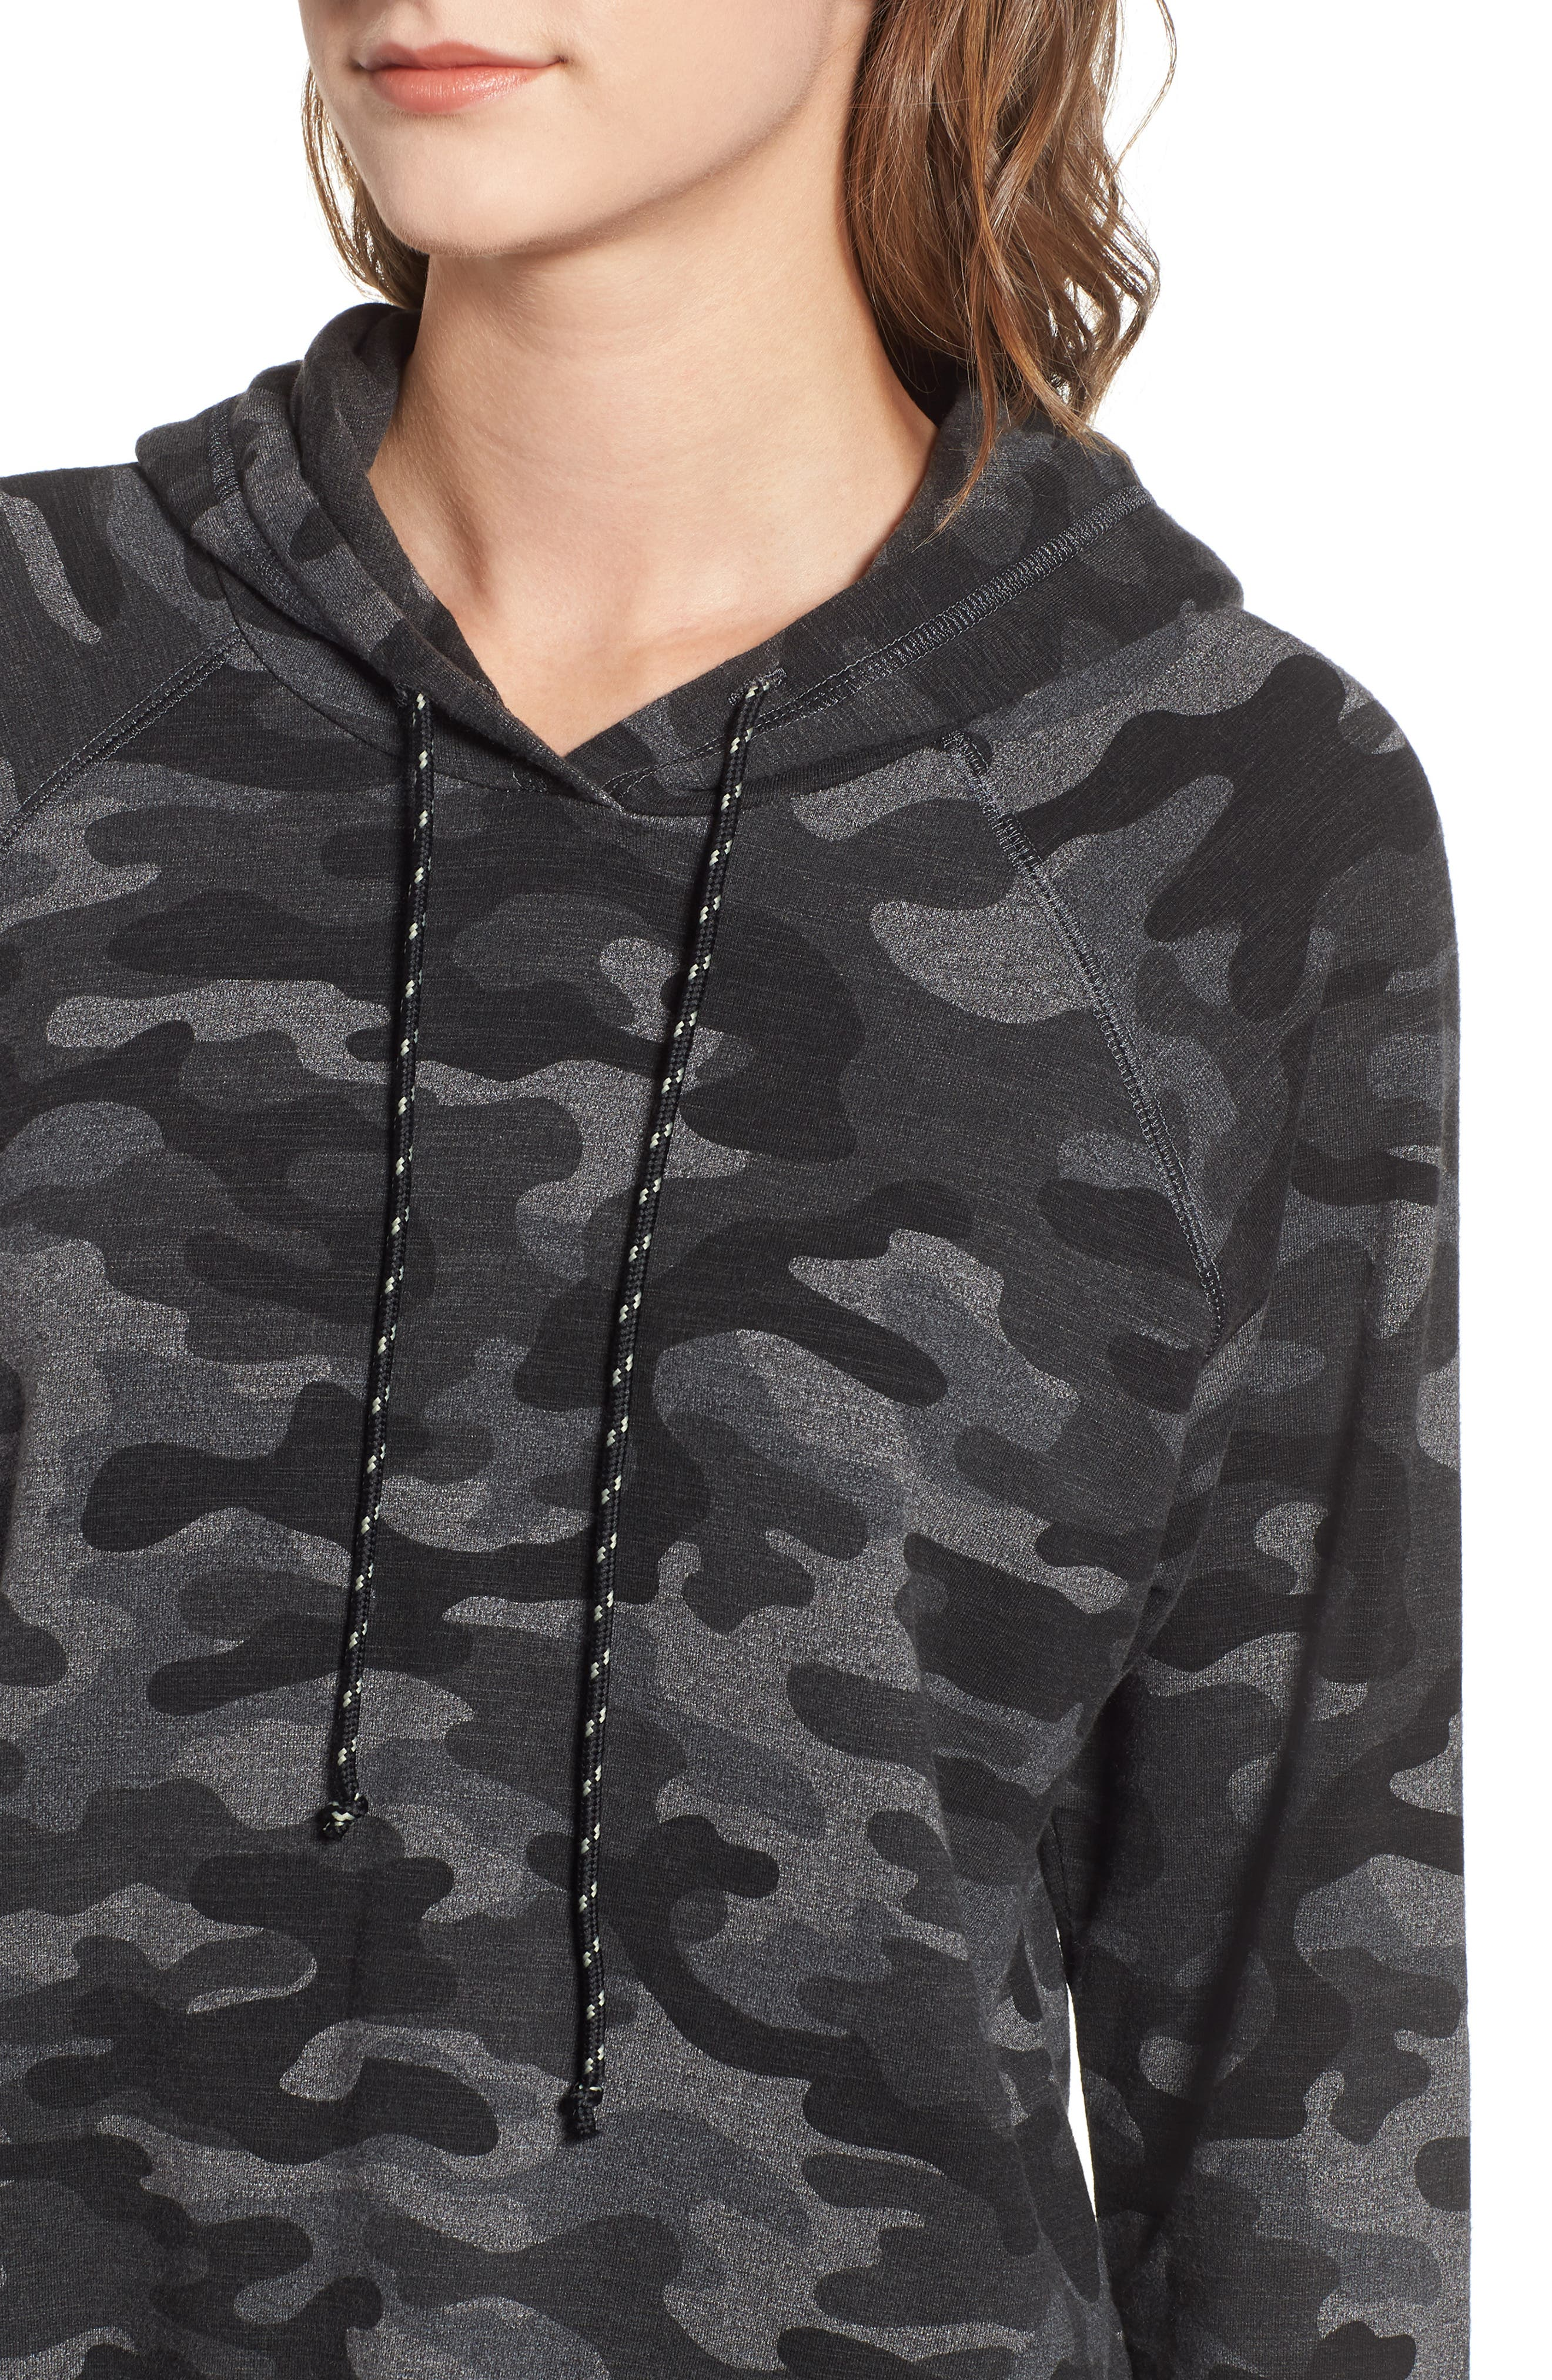 Camo Crop Hoodie,                             Alternate thumbnail 4, color,                             CHARCOAL